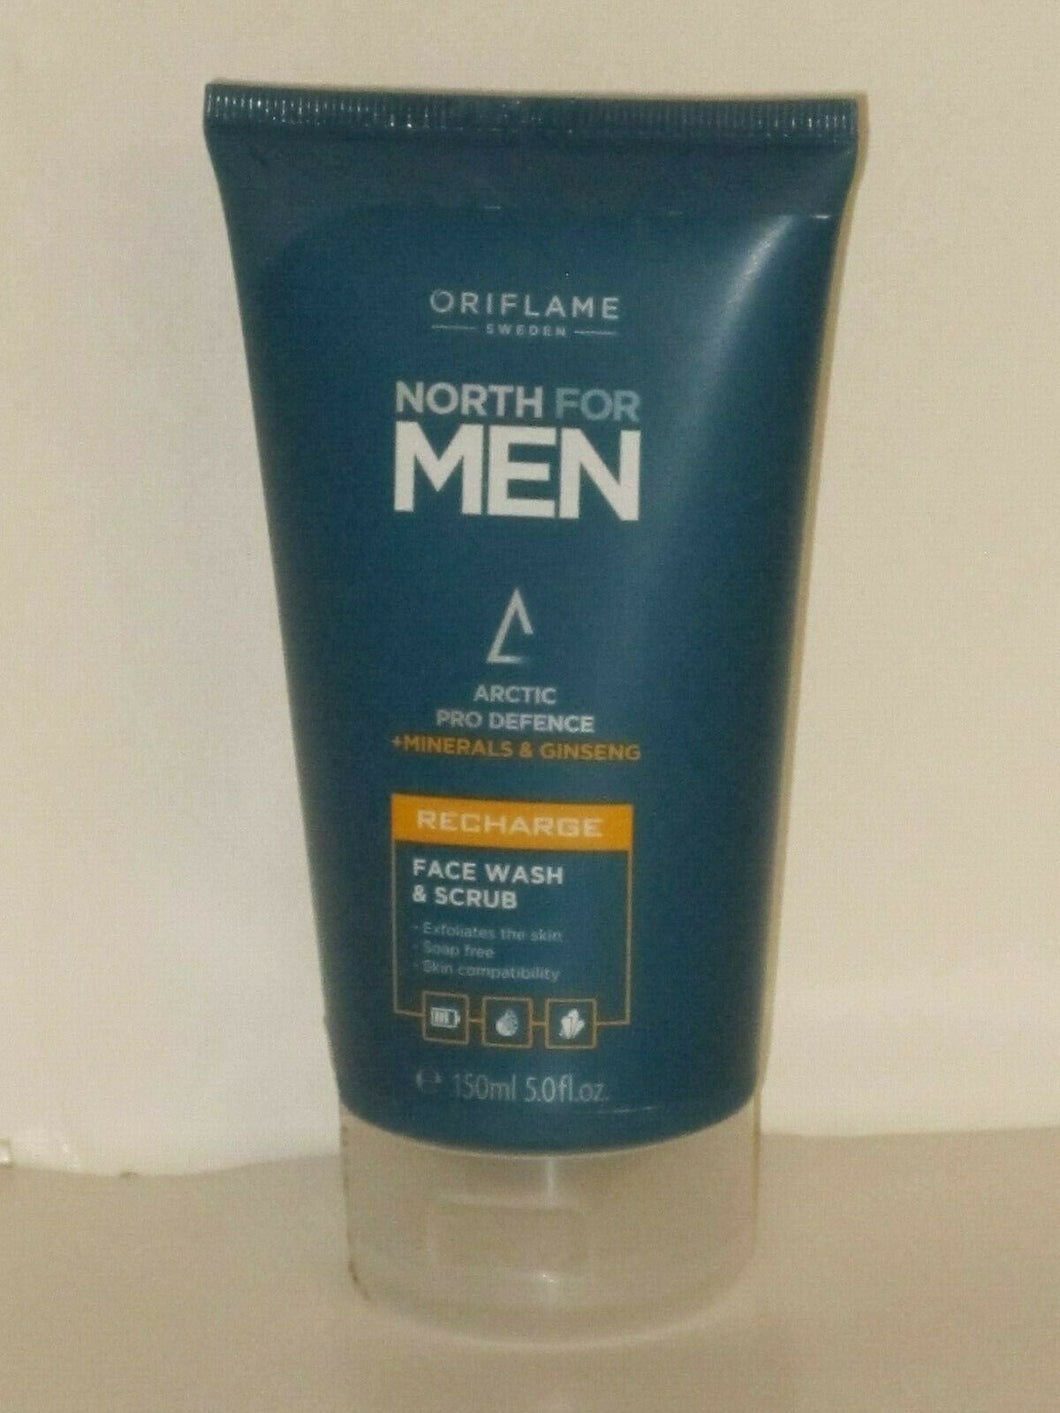 ORIFLAME SWEDEN NORTH FOR MEN FACE WASH & SCRUB 150 ml./ 5 fl.oz. NEW!